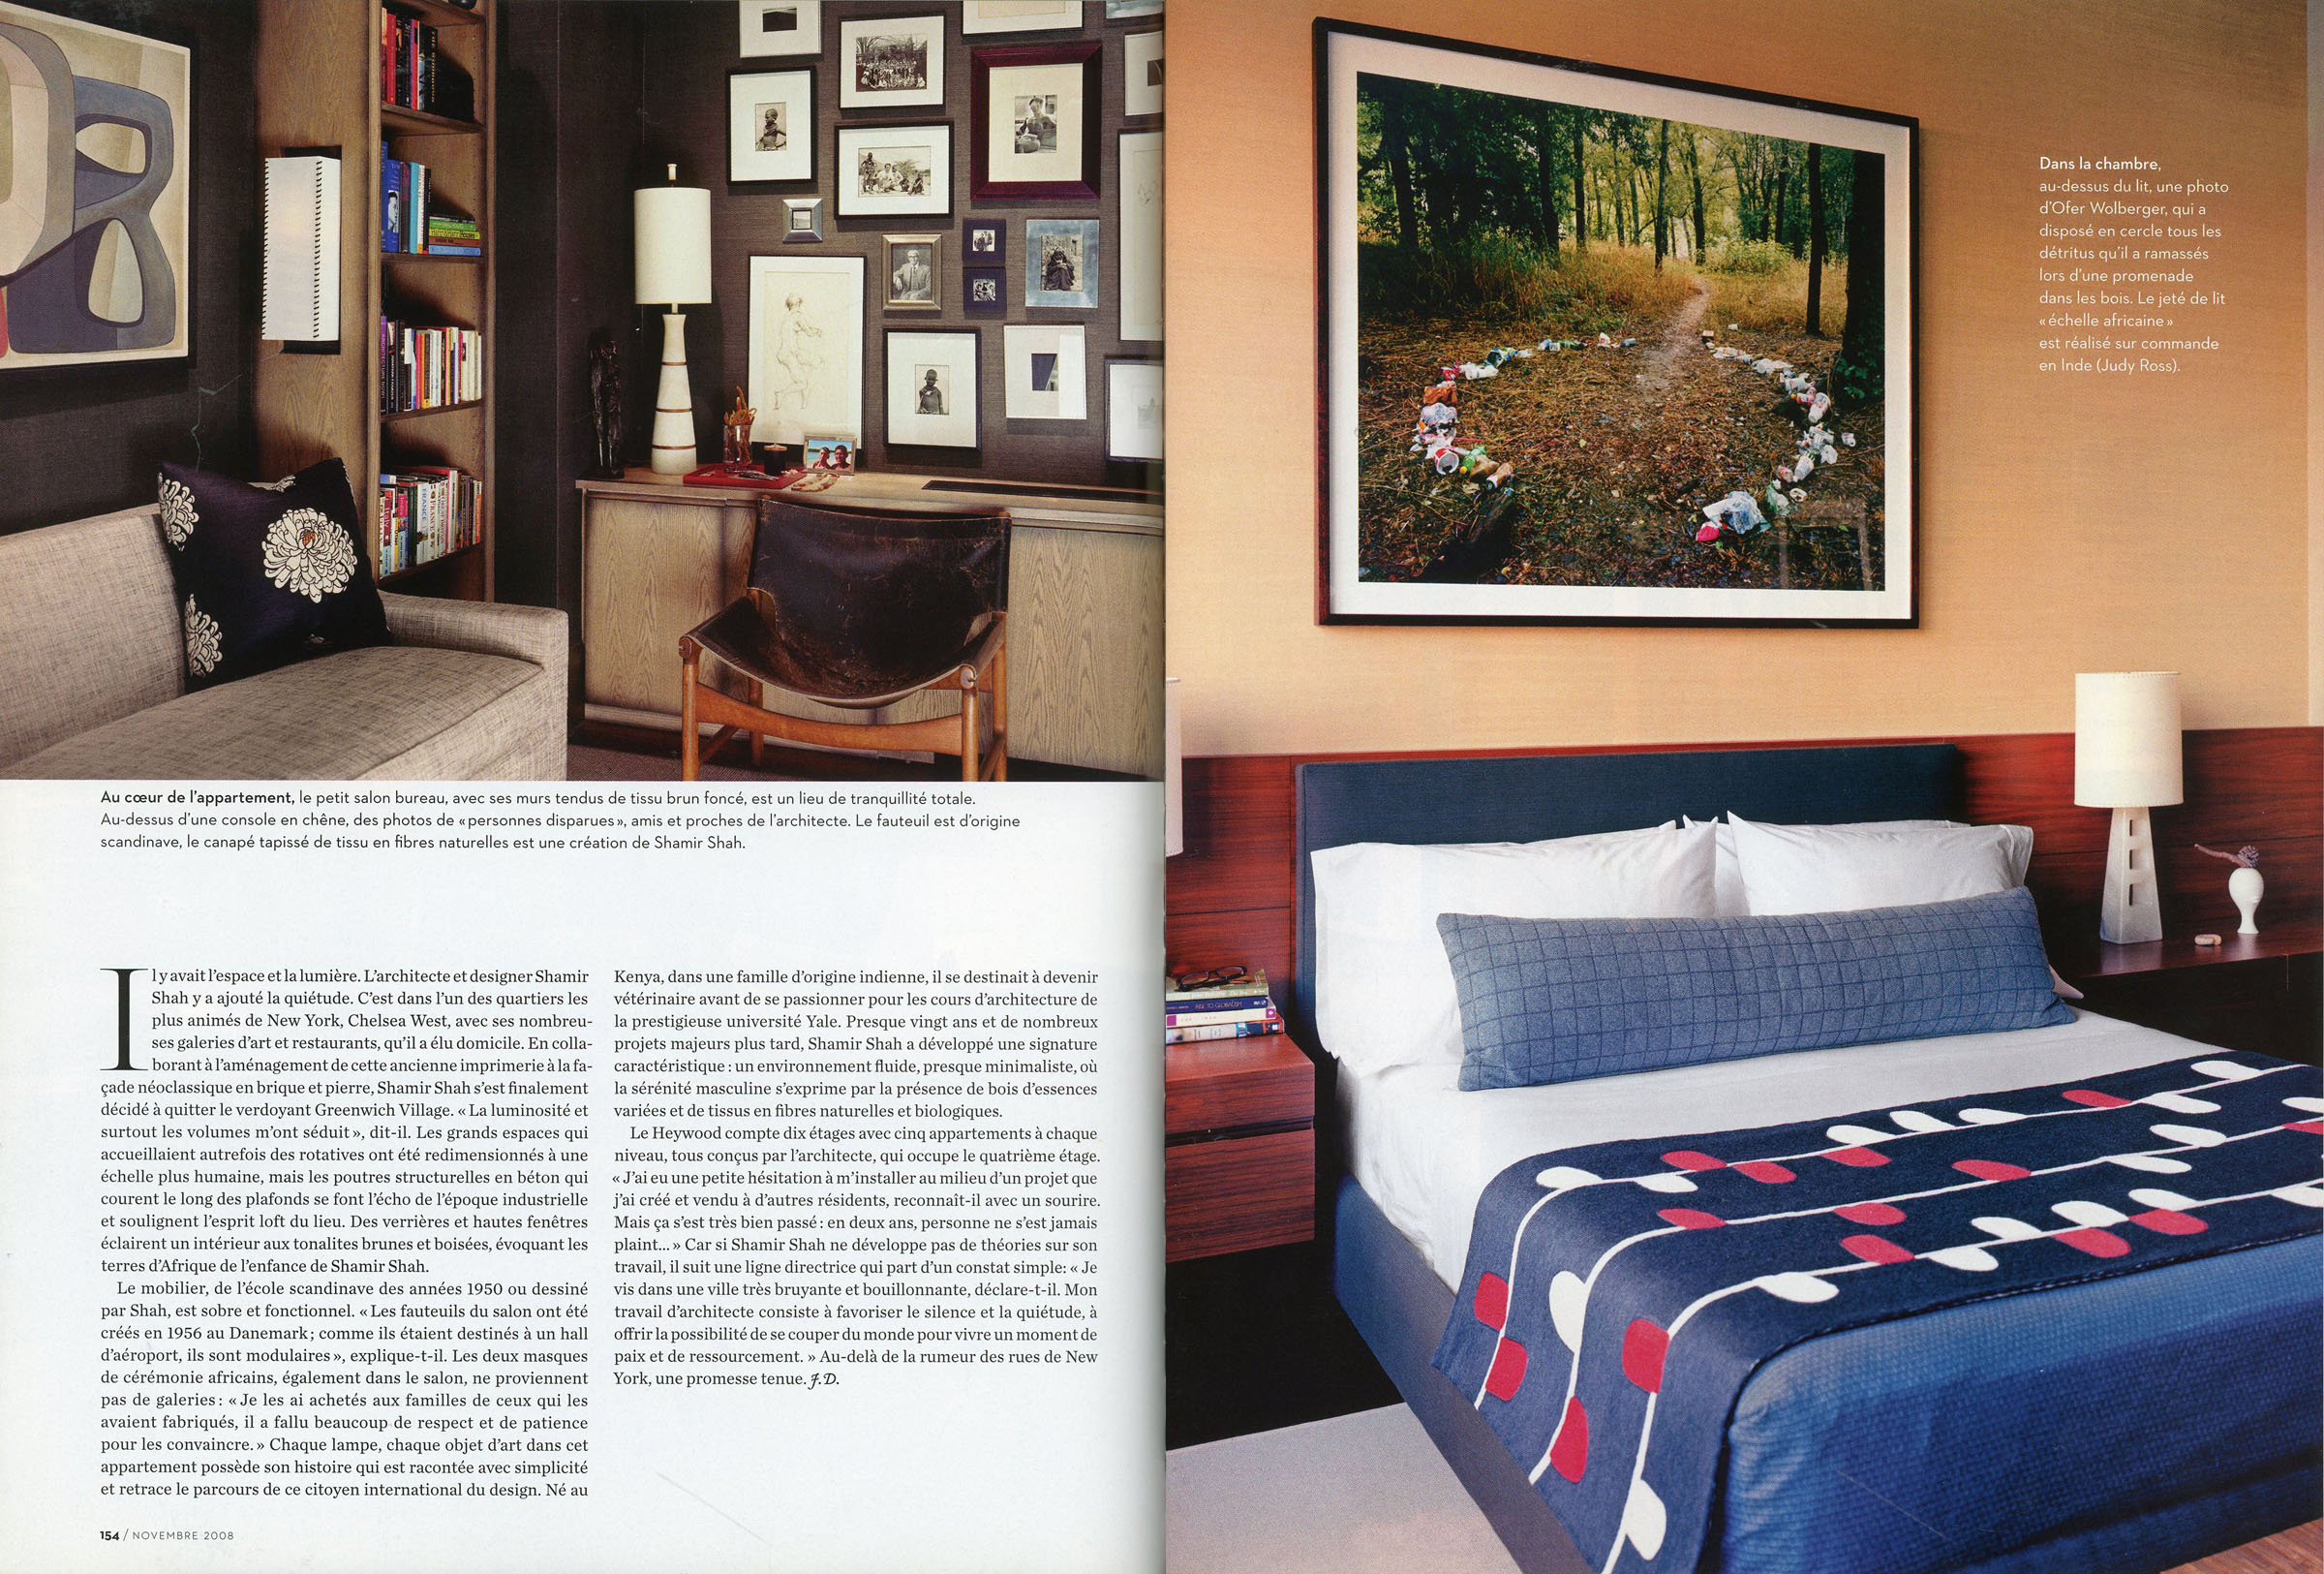 Pages from AD France_2008-4.jpg